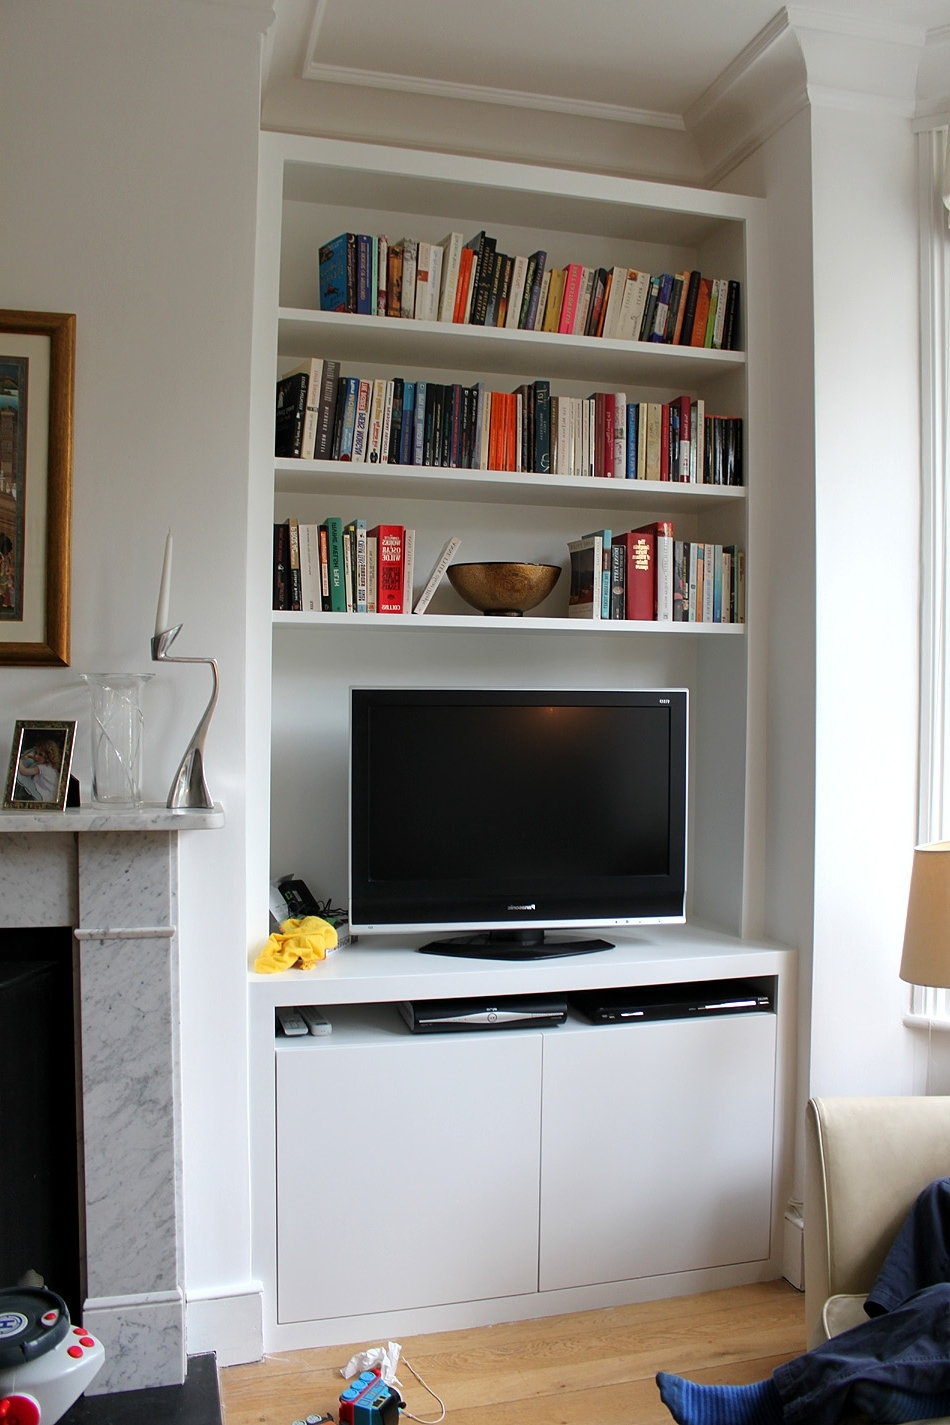 Trendy Bespoke Tv Stands Within Fitted Wardrobes, Bookcases, Shelving, Floating Shelves, London (View 9 of 15)